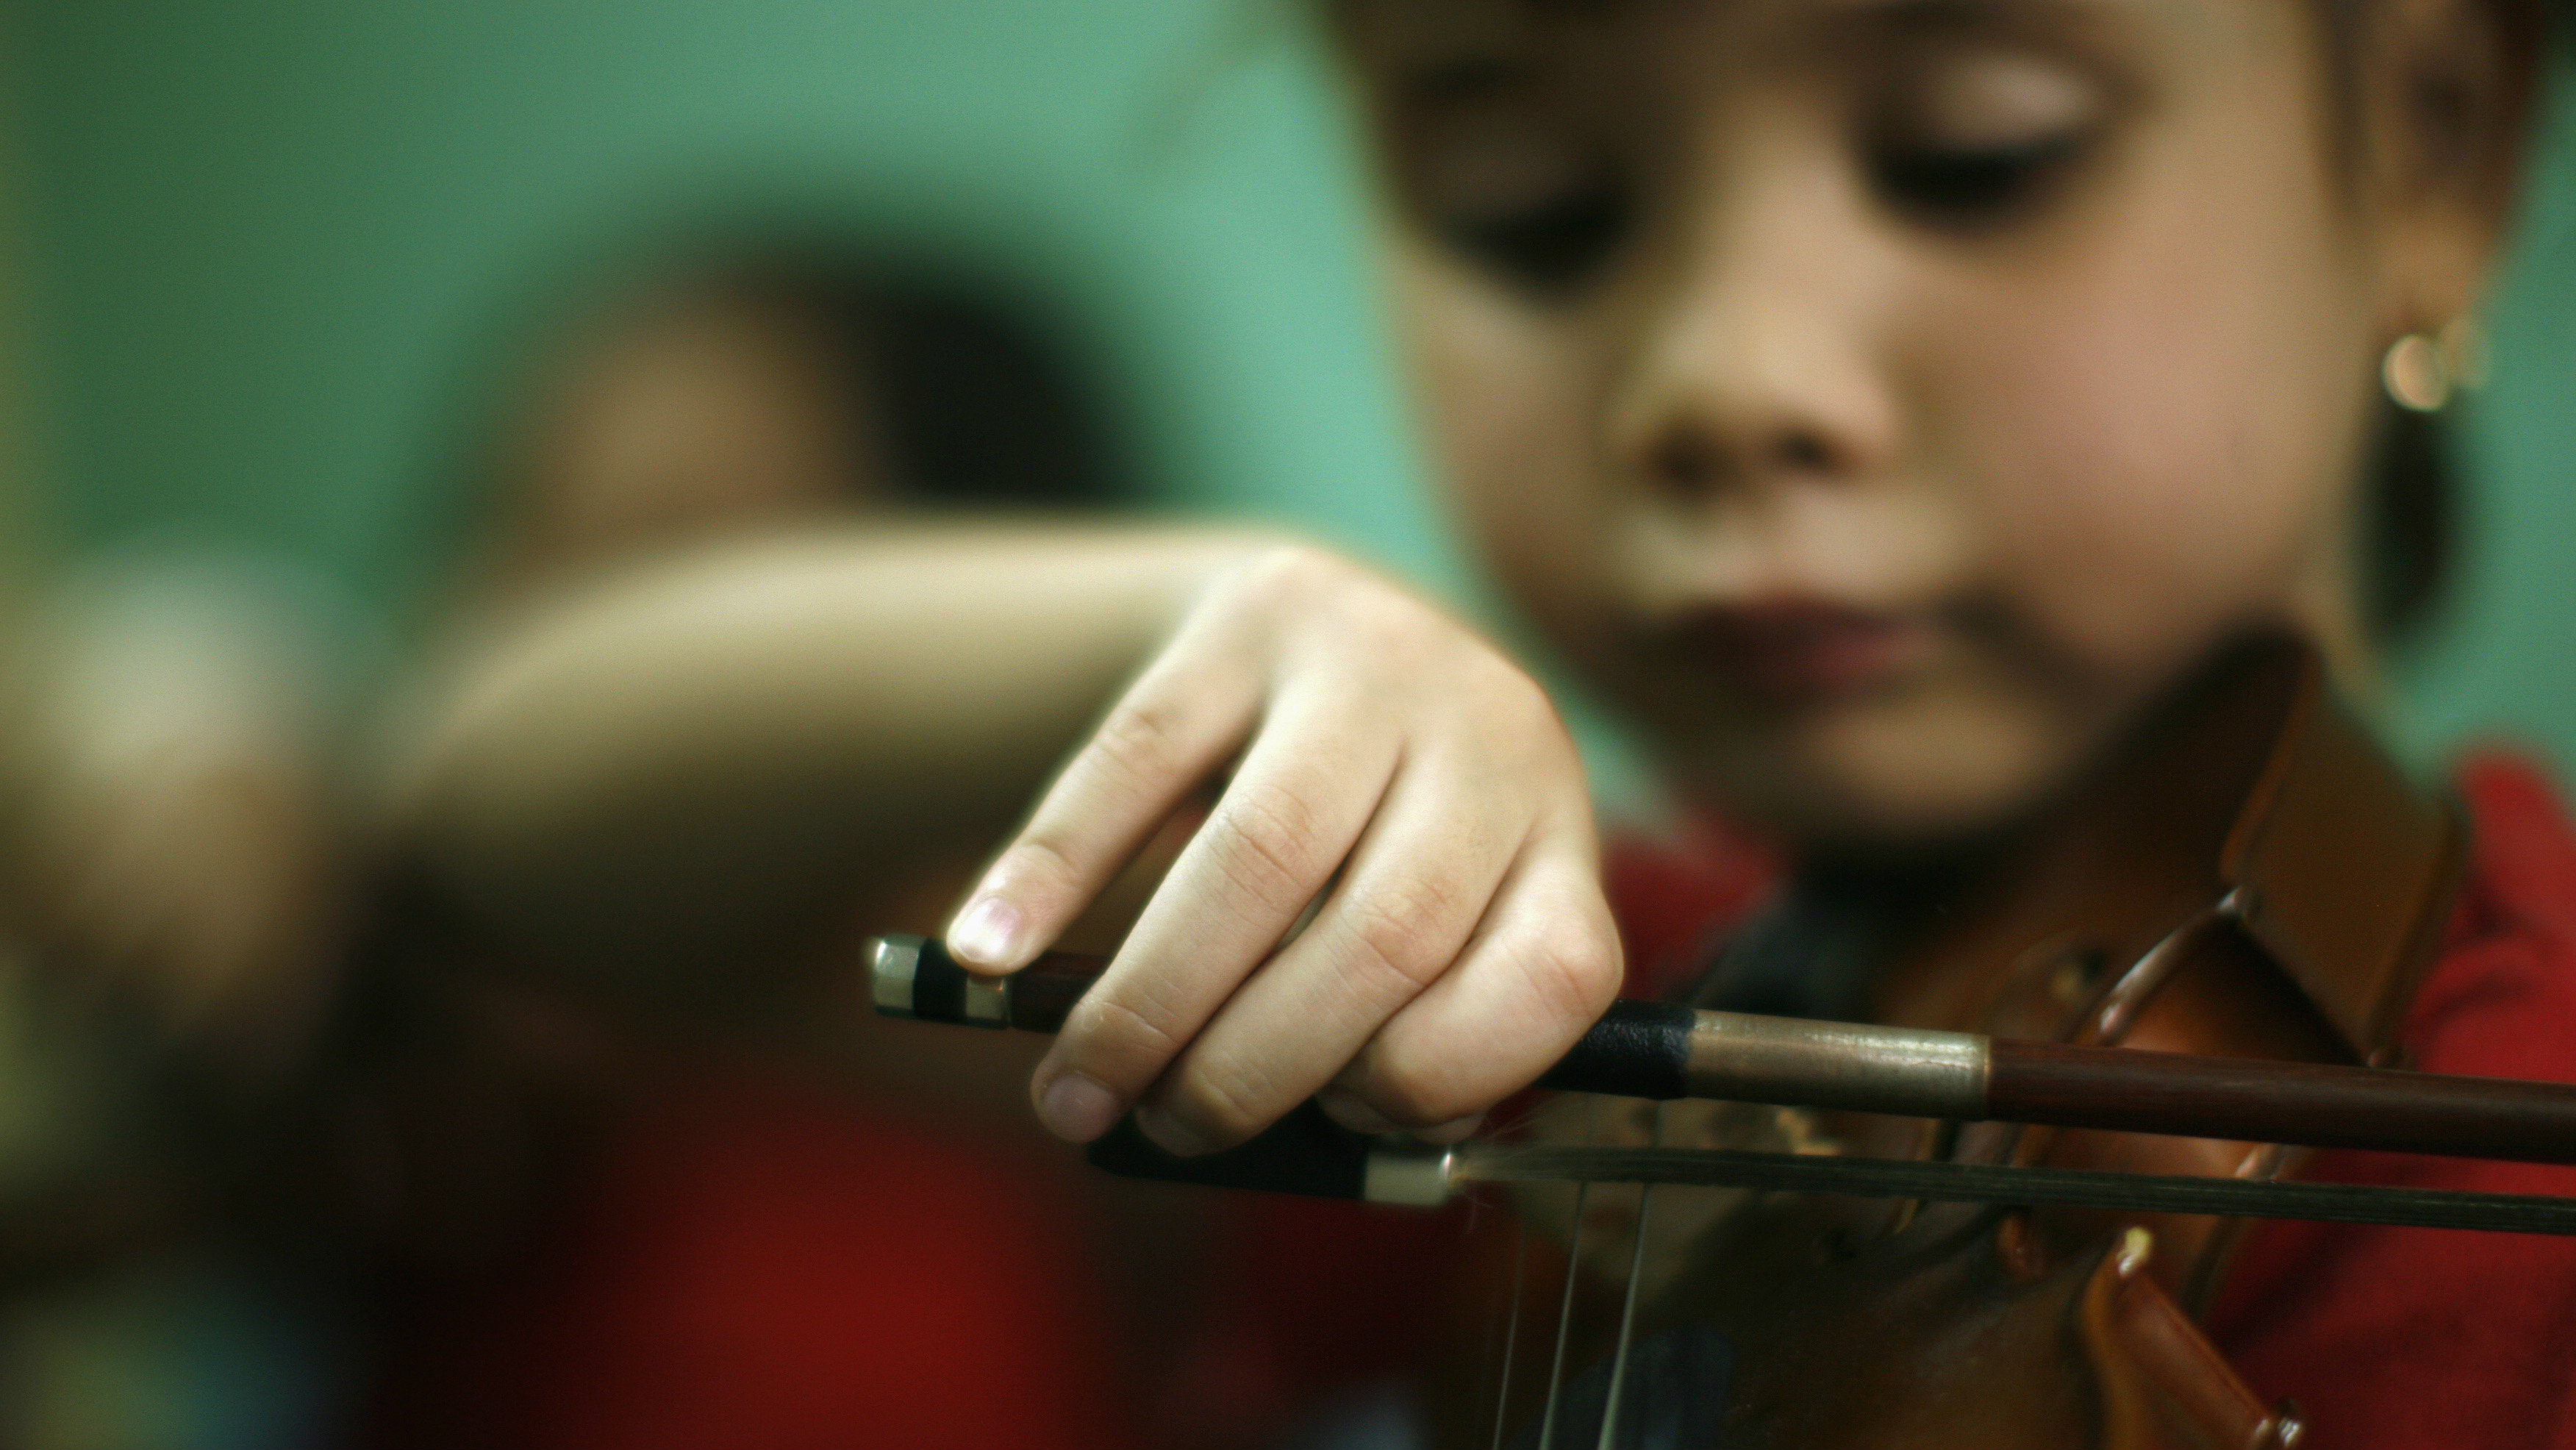 Yosneidi Ramos attends violin lessons at a youth orchestra music school in the neighbourhood of Carapita in Caracas June 3, 2008. Gun-blighted Venezuela's youth orchestras and choirs have helped thousands of children resist thug life in some of South America's toughest slums, and now wealthy countries are lining up to emulate the system. Close to 300,000 Venezuelan children, many from deprived city barrios, others from distant Amazon towns, now choose violins and trombones over guns and drugs, proving Mozart and Berlioz can be as fresh as sampled beats even to 21st century youths. Picture Taken June 3. REUTERS/Jorge Silva (VENEZUELA)